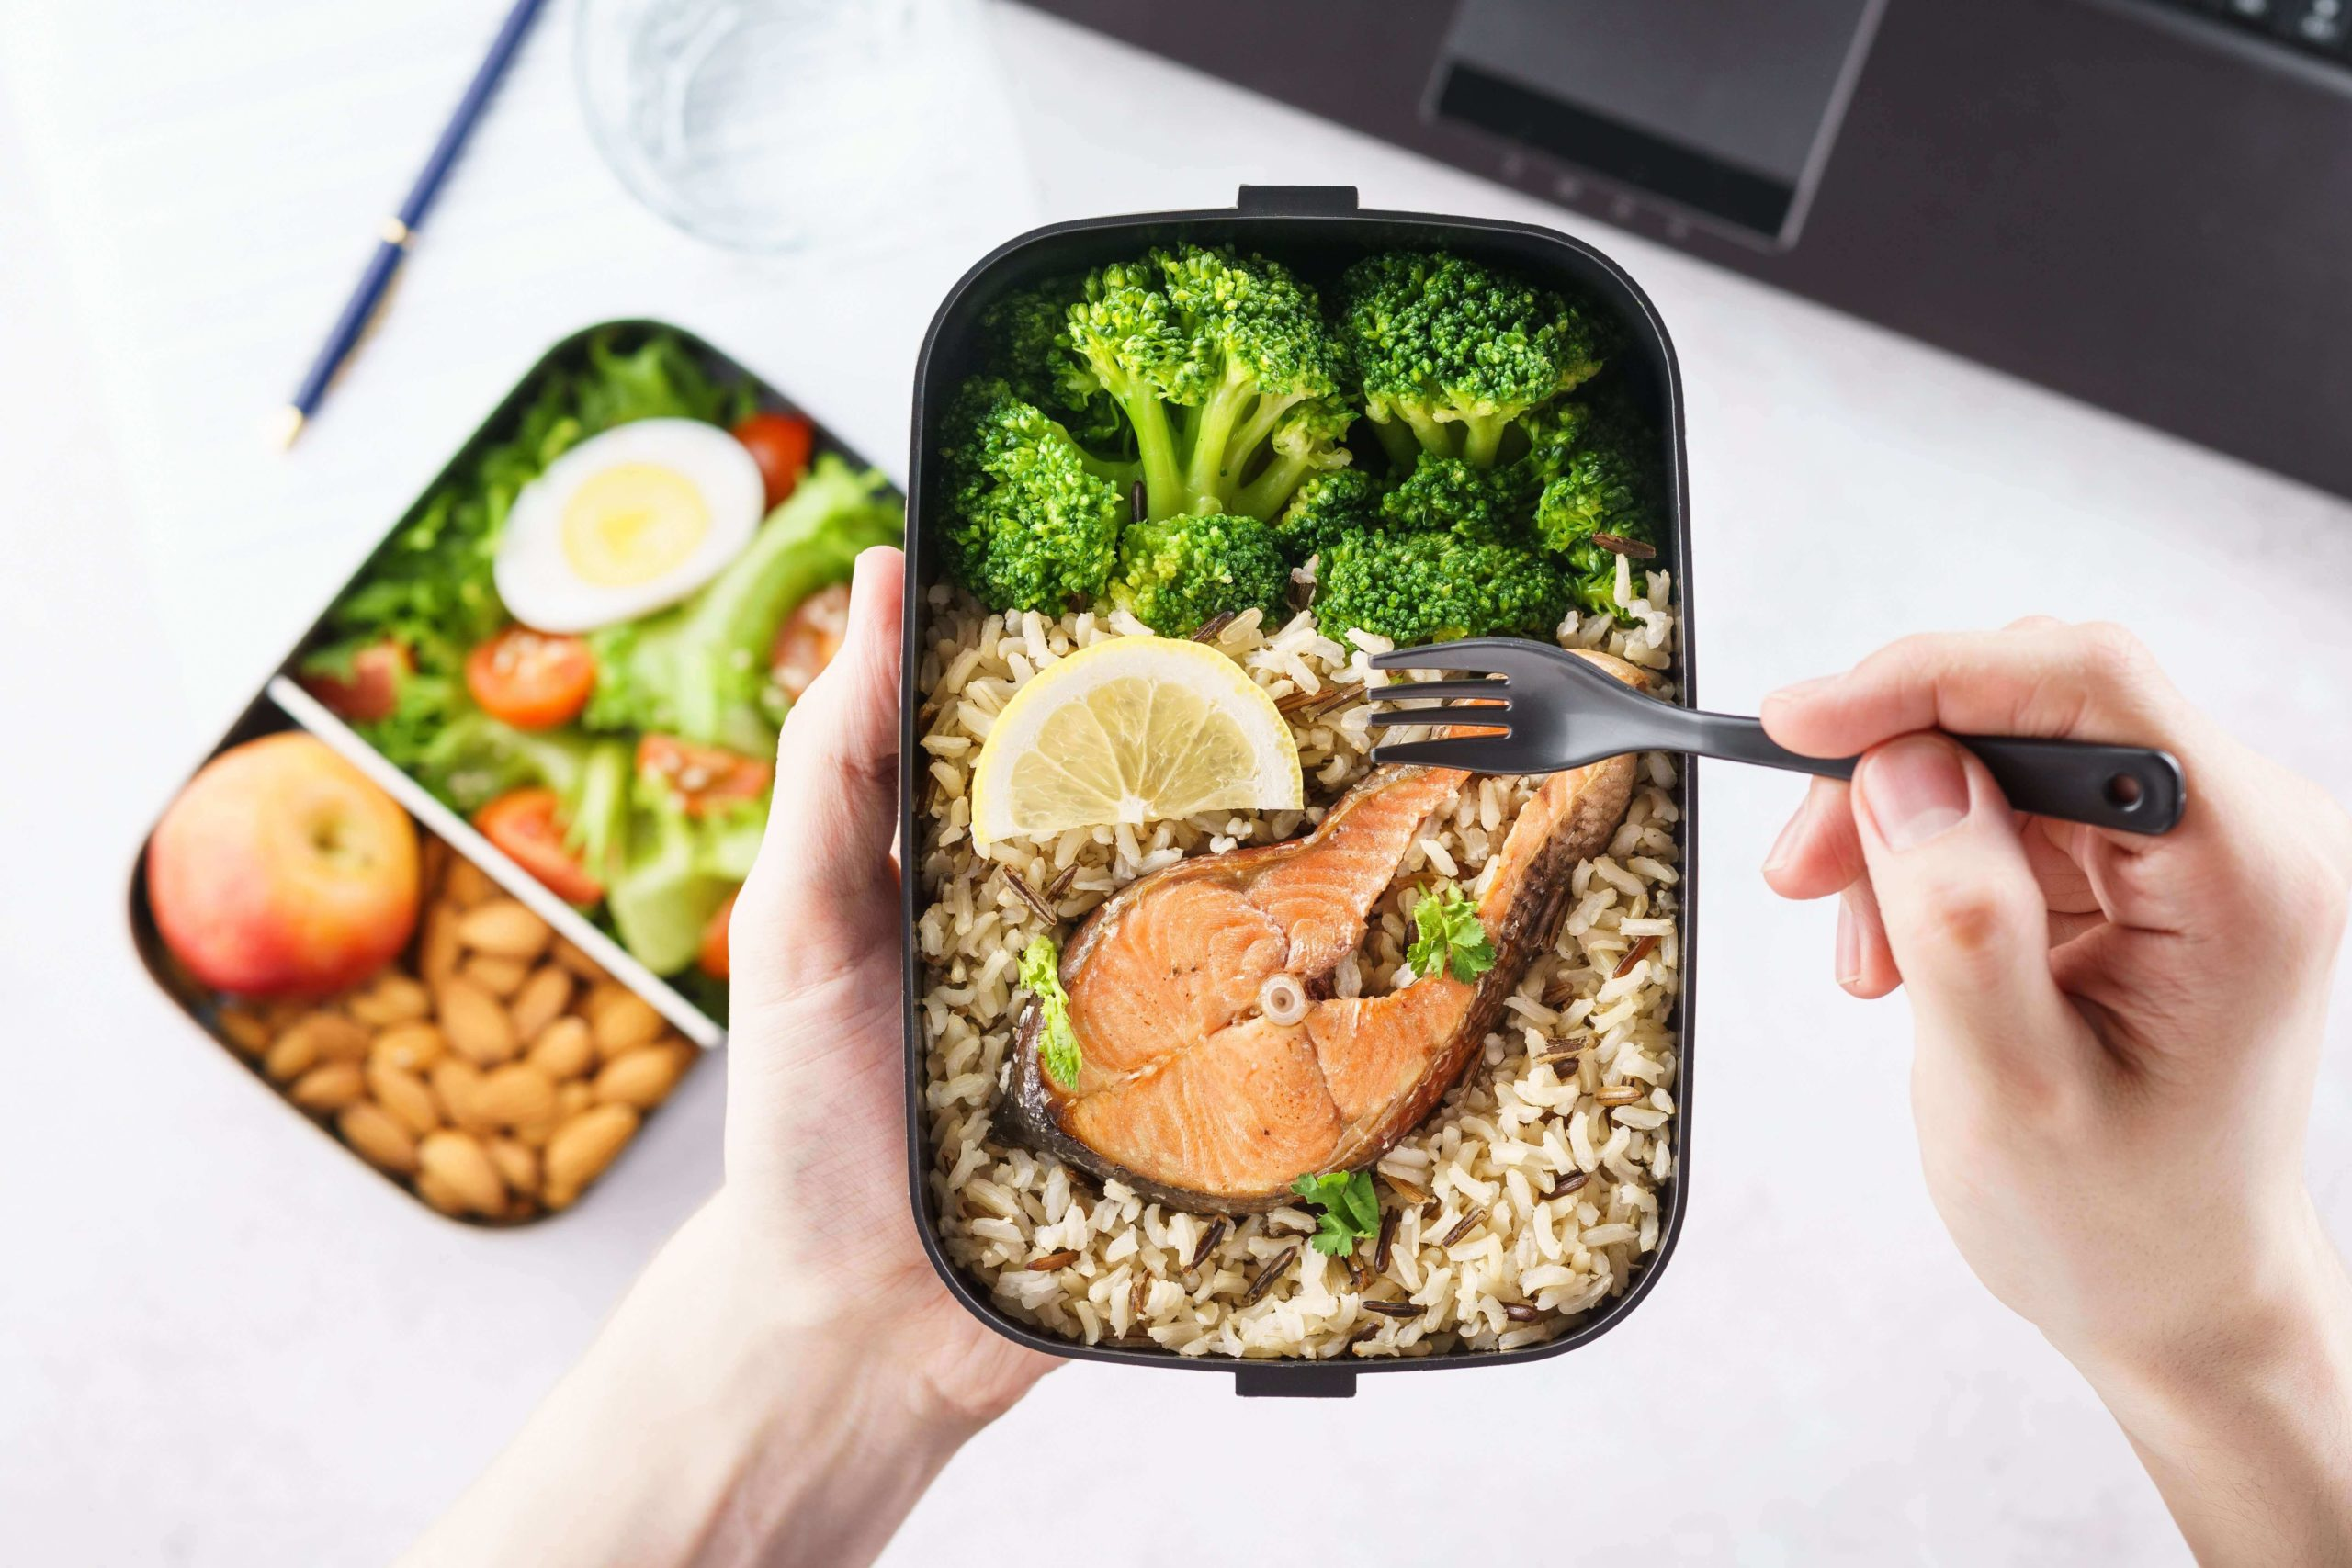 New Work dangers for caterers during Covid19 - bento box lunchbox